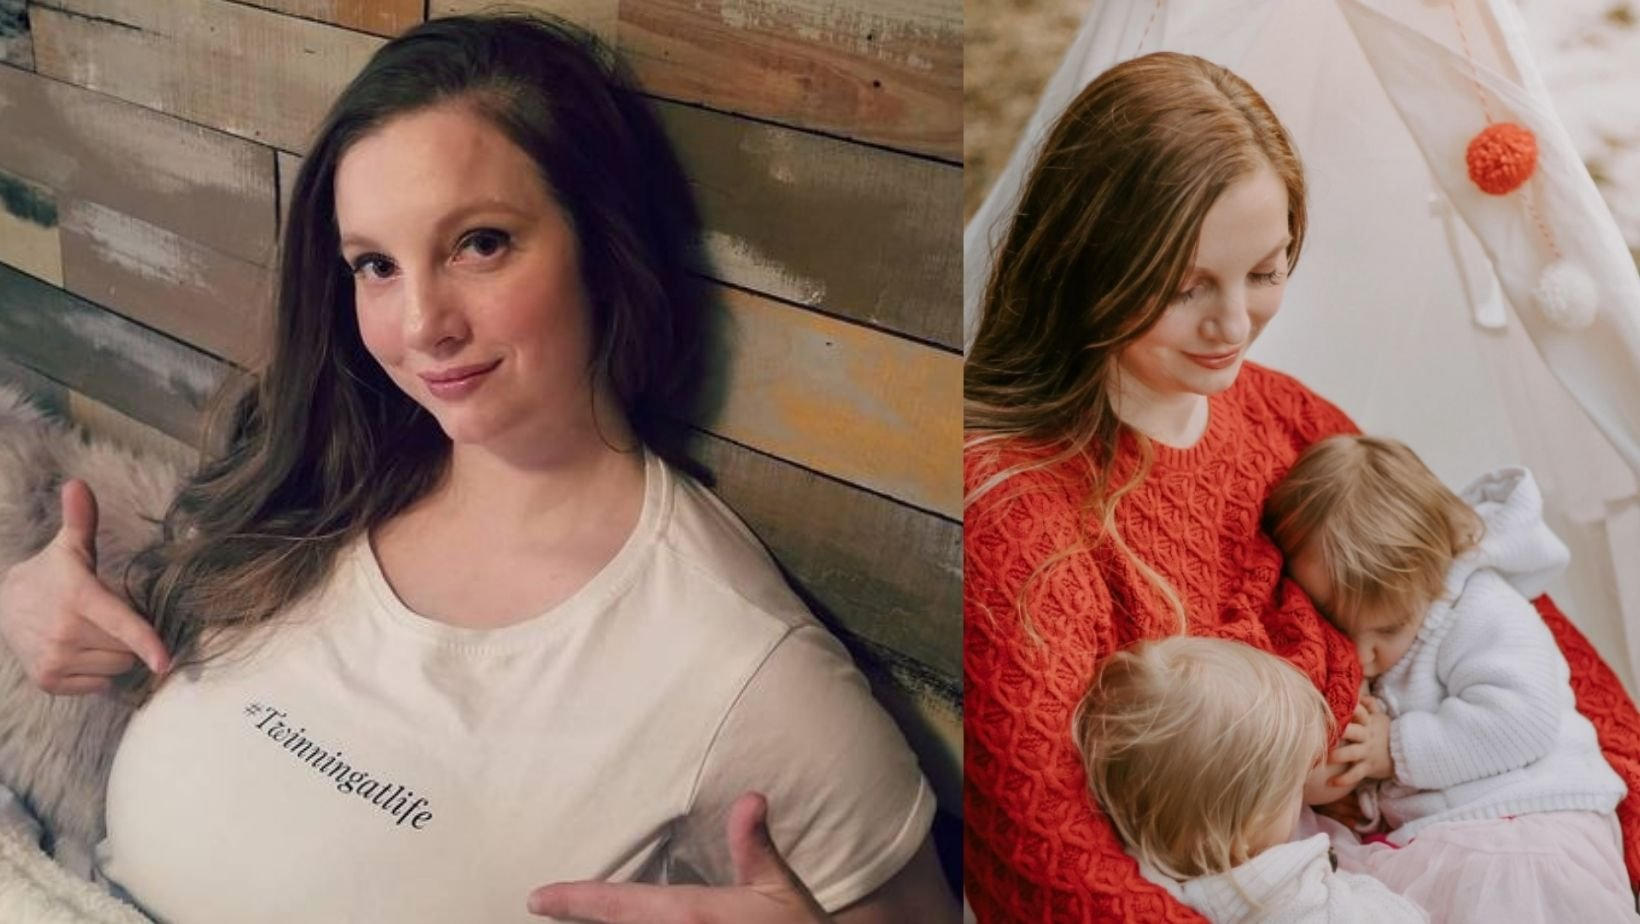 1 72.jpg?resize=412,232 - Mom Of 7 Receives Tons Of Filthy Messages After Posting Breastfeeding Photos On Instagram